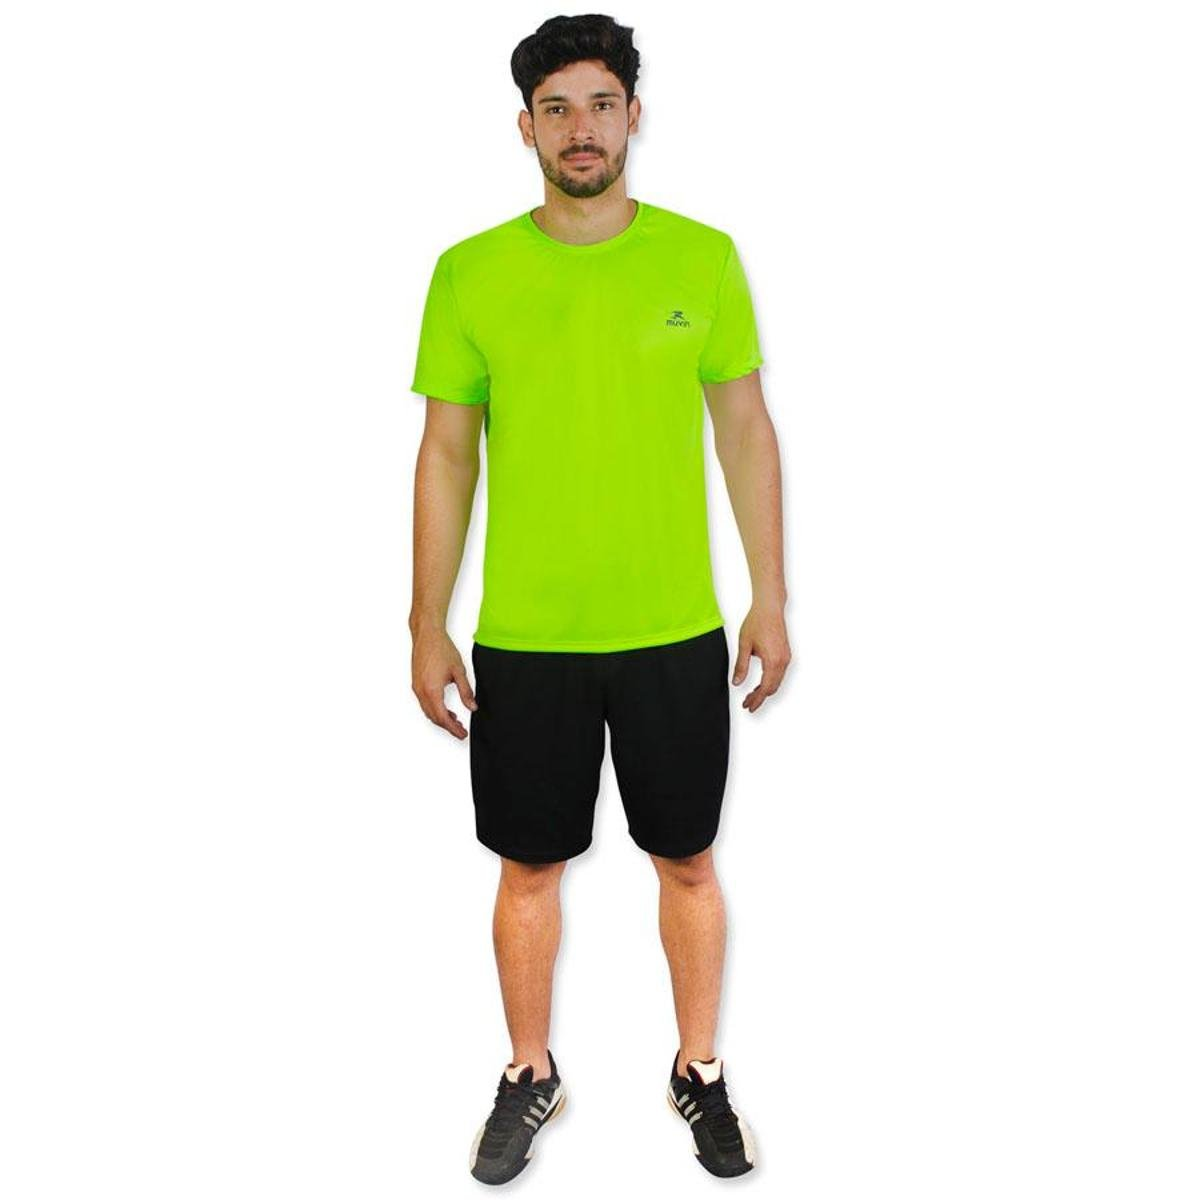 Limão Workout Dry Camiseta Verde SS Color Camiseta Muvin Color 8IatOtx